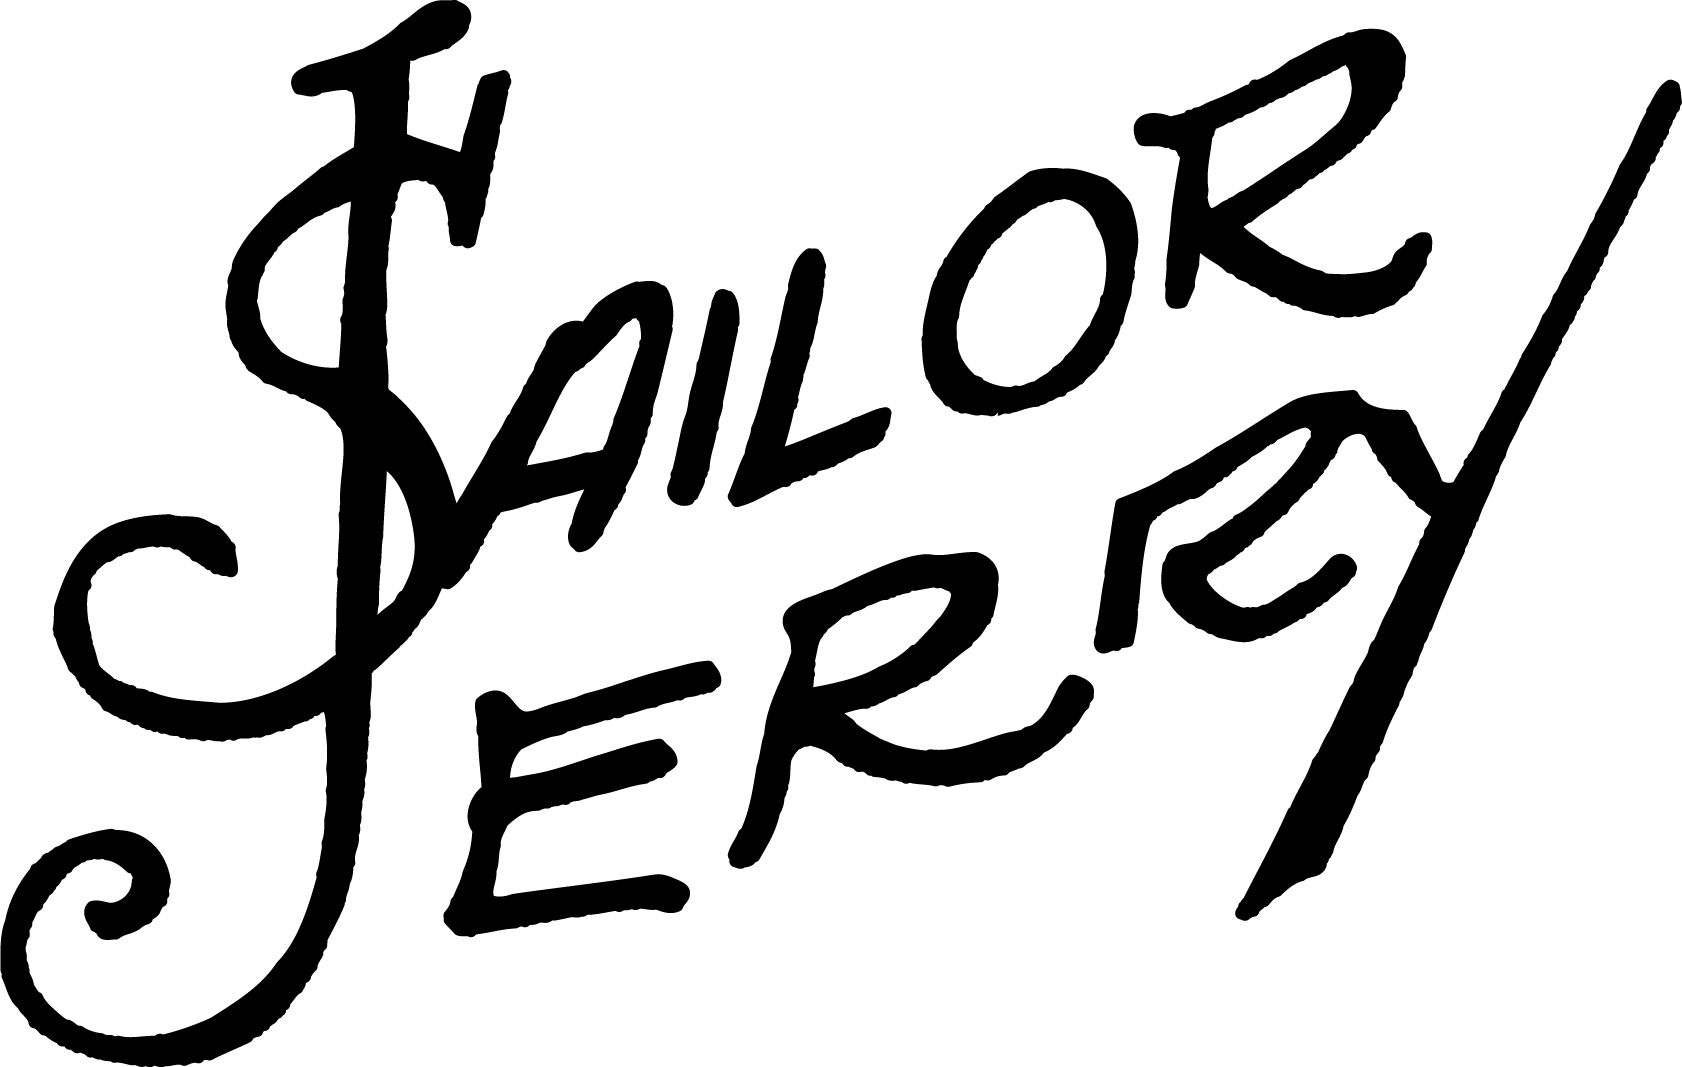 Sailor jerry logo download free clipart with a transparent.